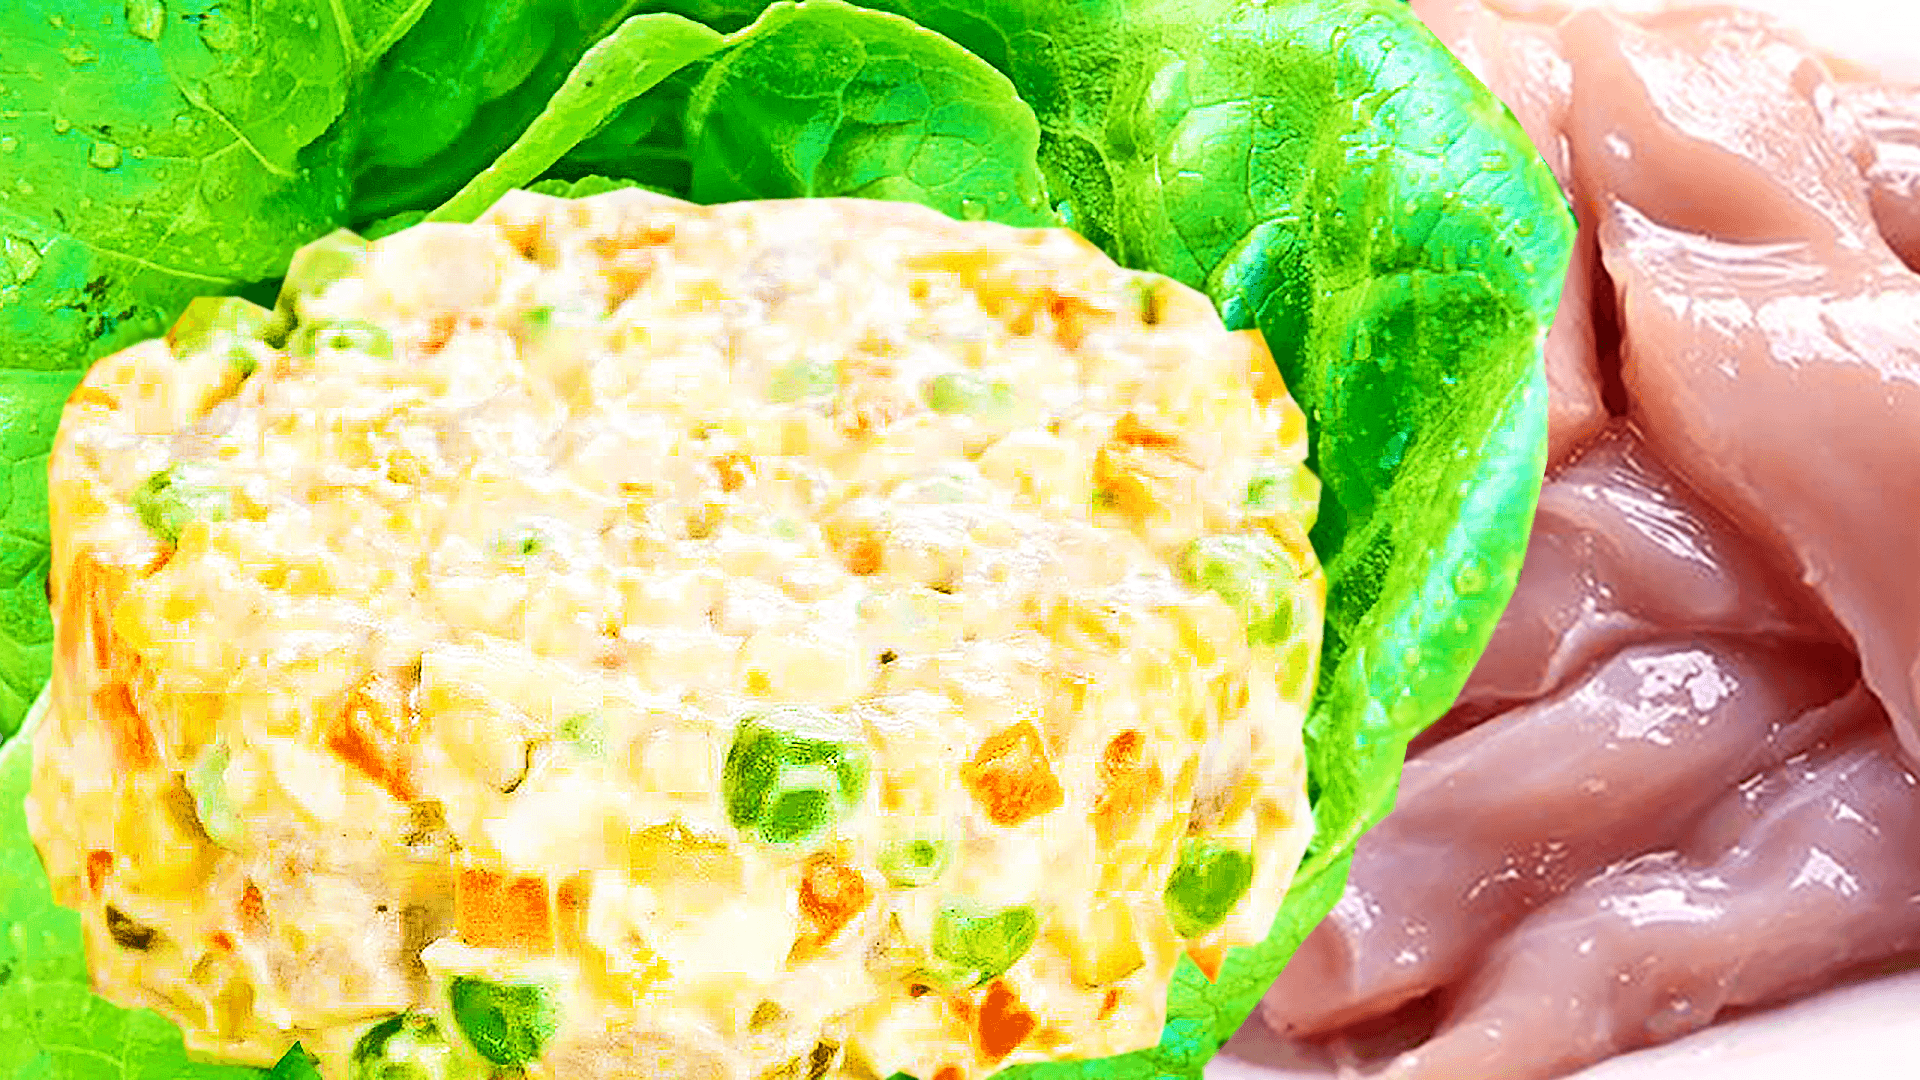 Homemade Chicken Salad with Vegetables - Easy Chicken Salad Recipe